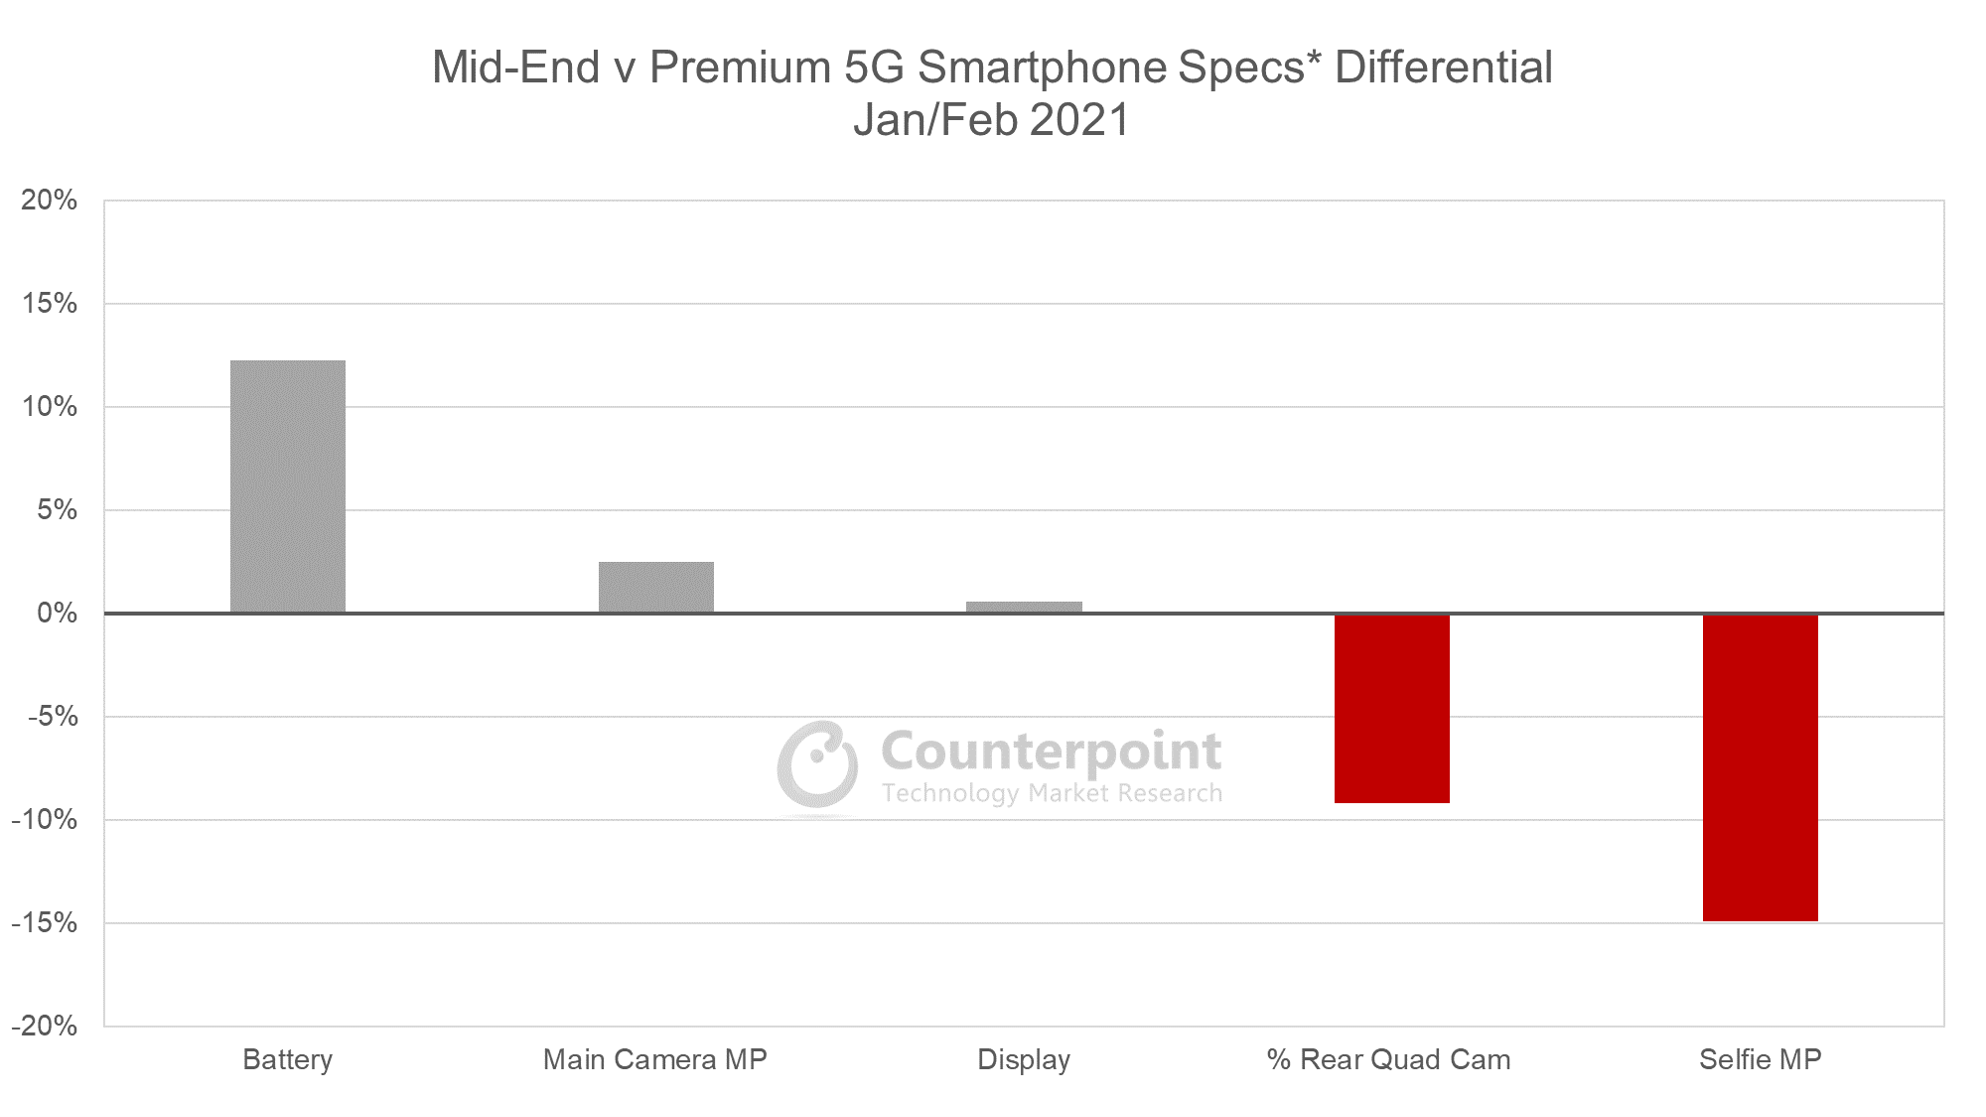 Counterpoint Research Mid-End v Premium 5G Smartphone Specs Differential